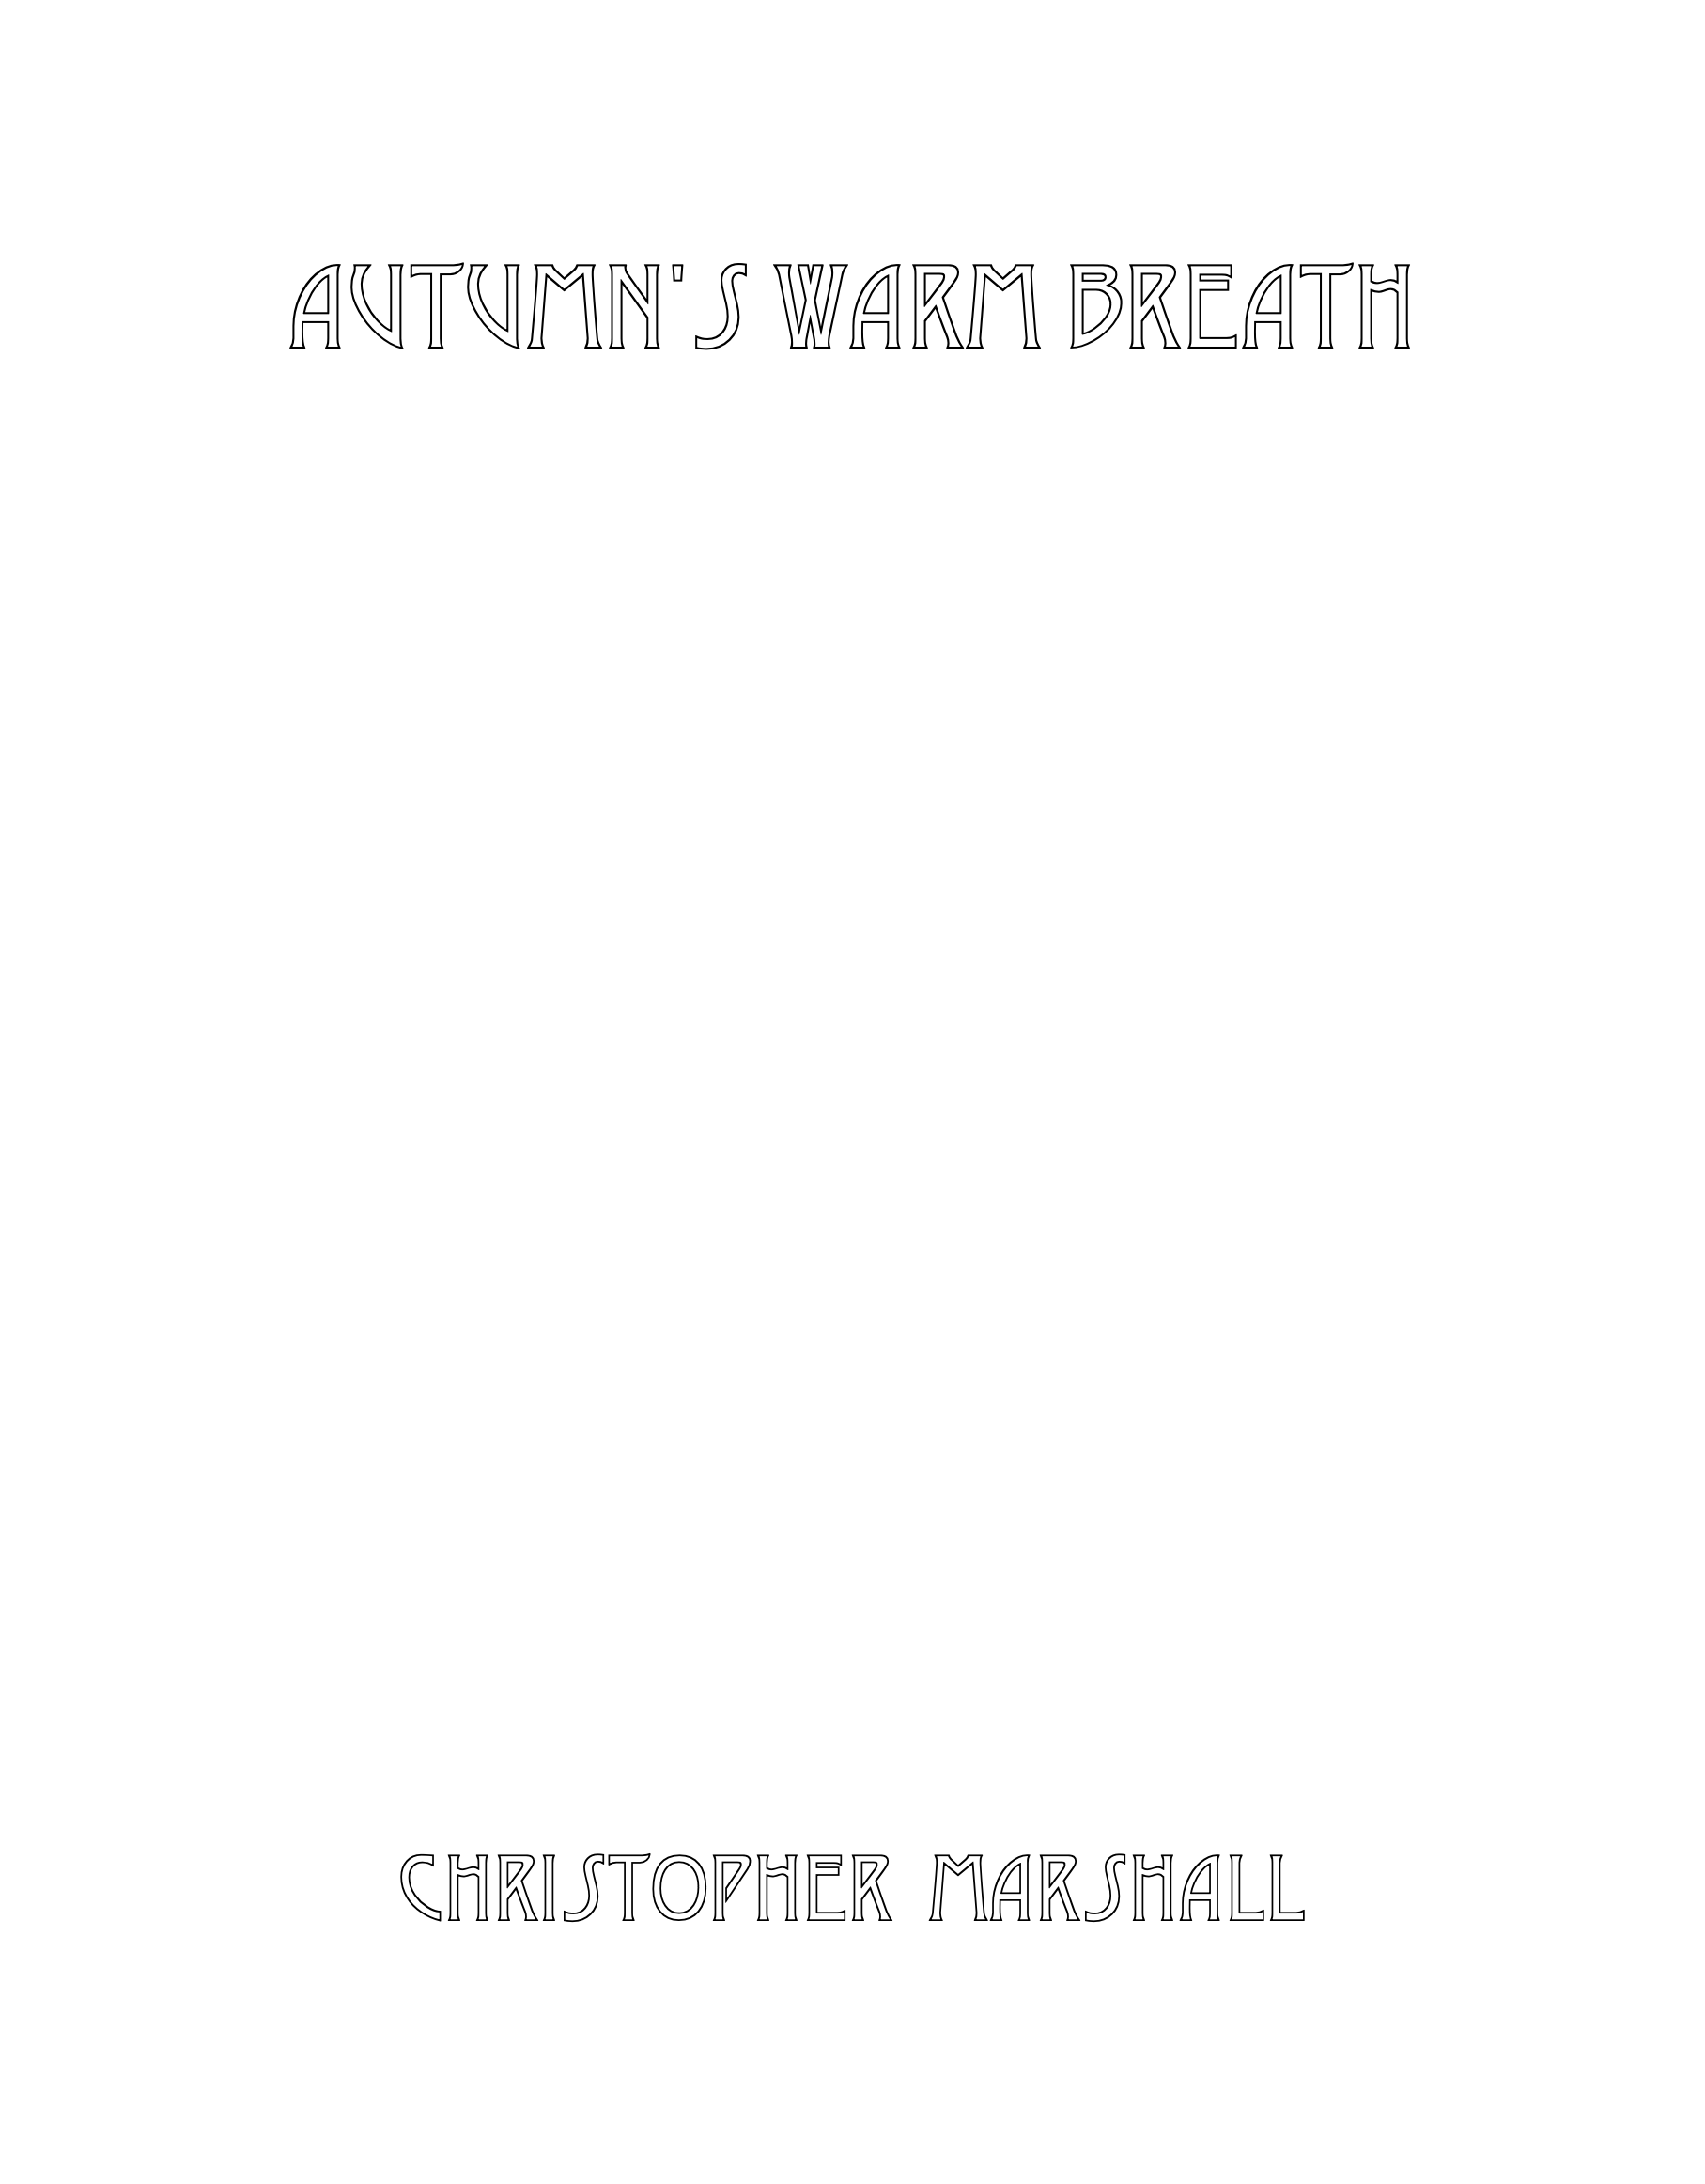 Autumn's Warm Breath by Christopher Marshall